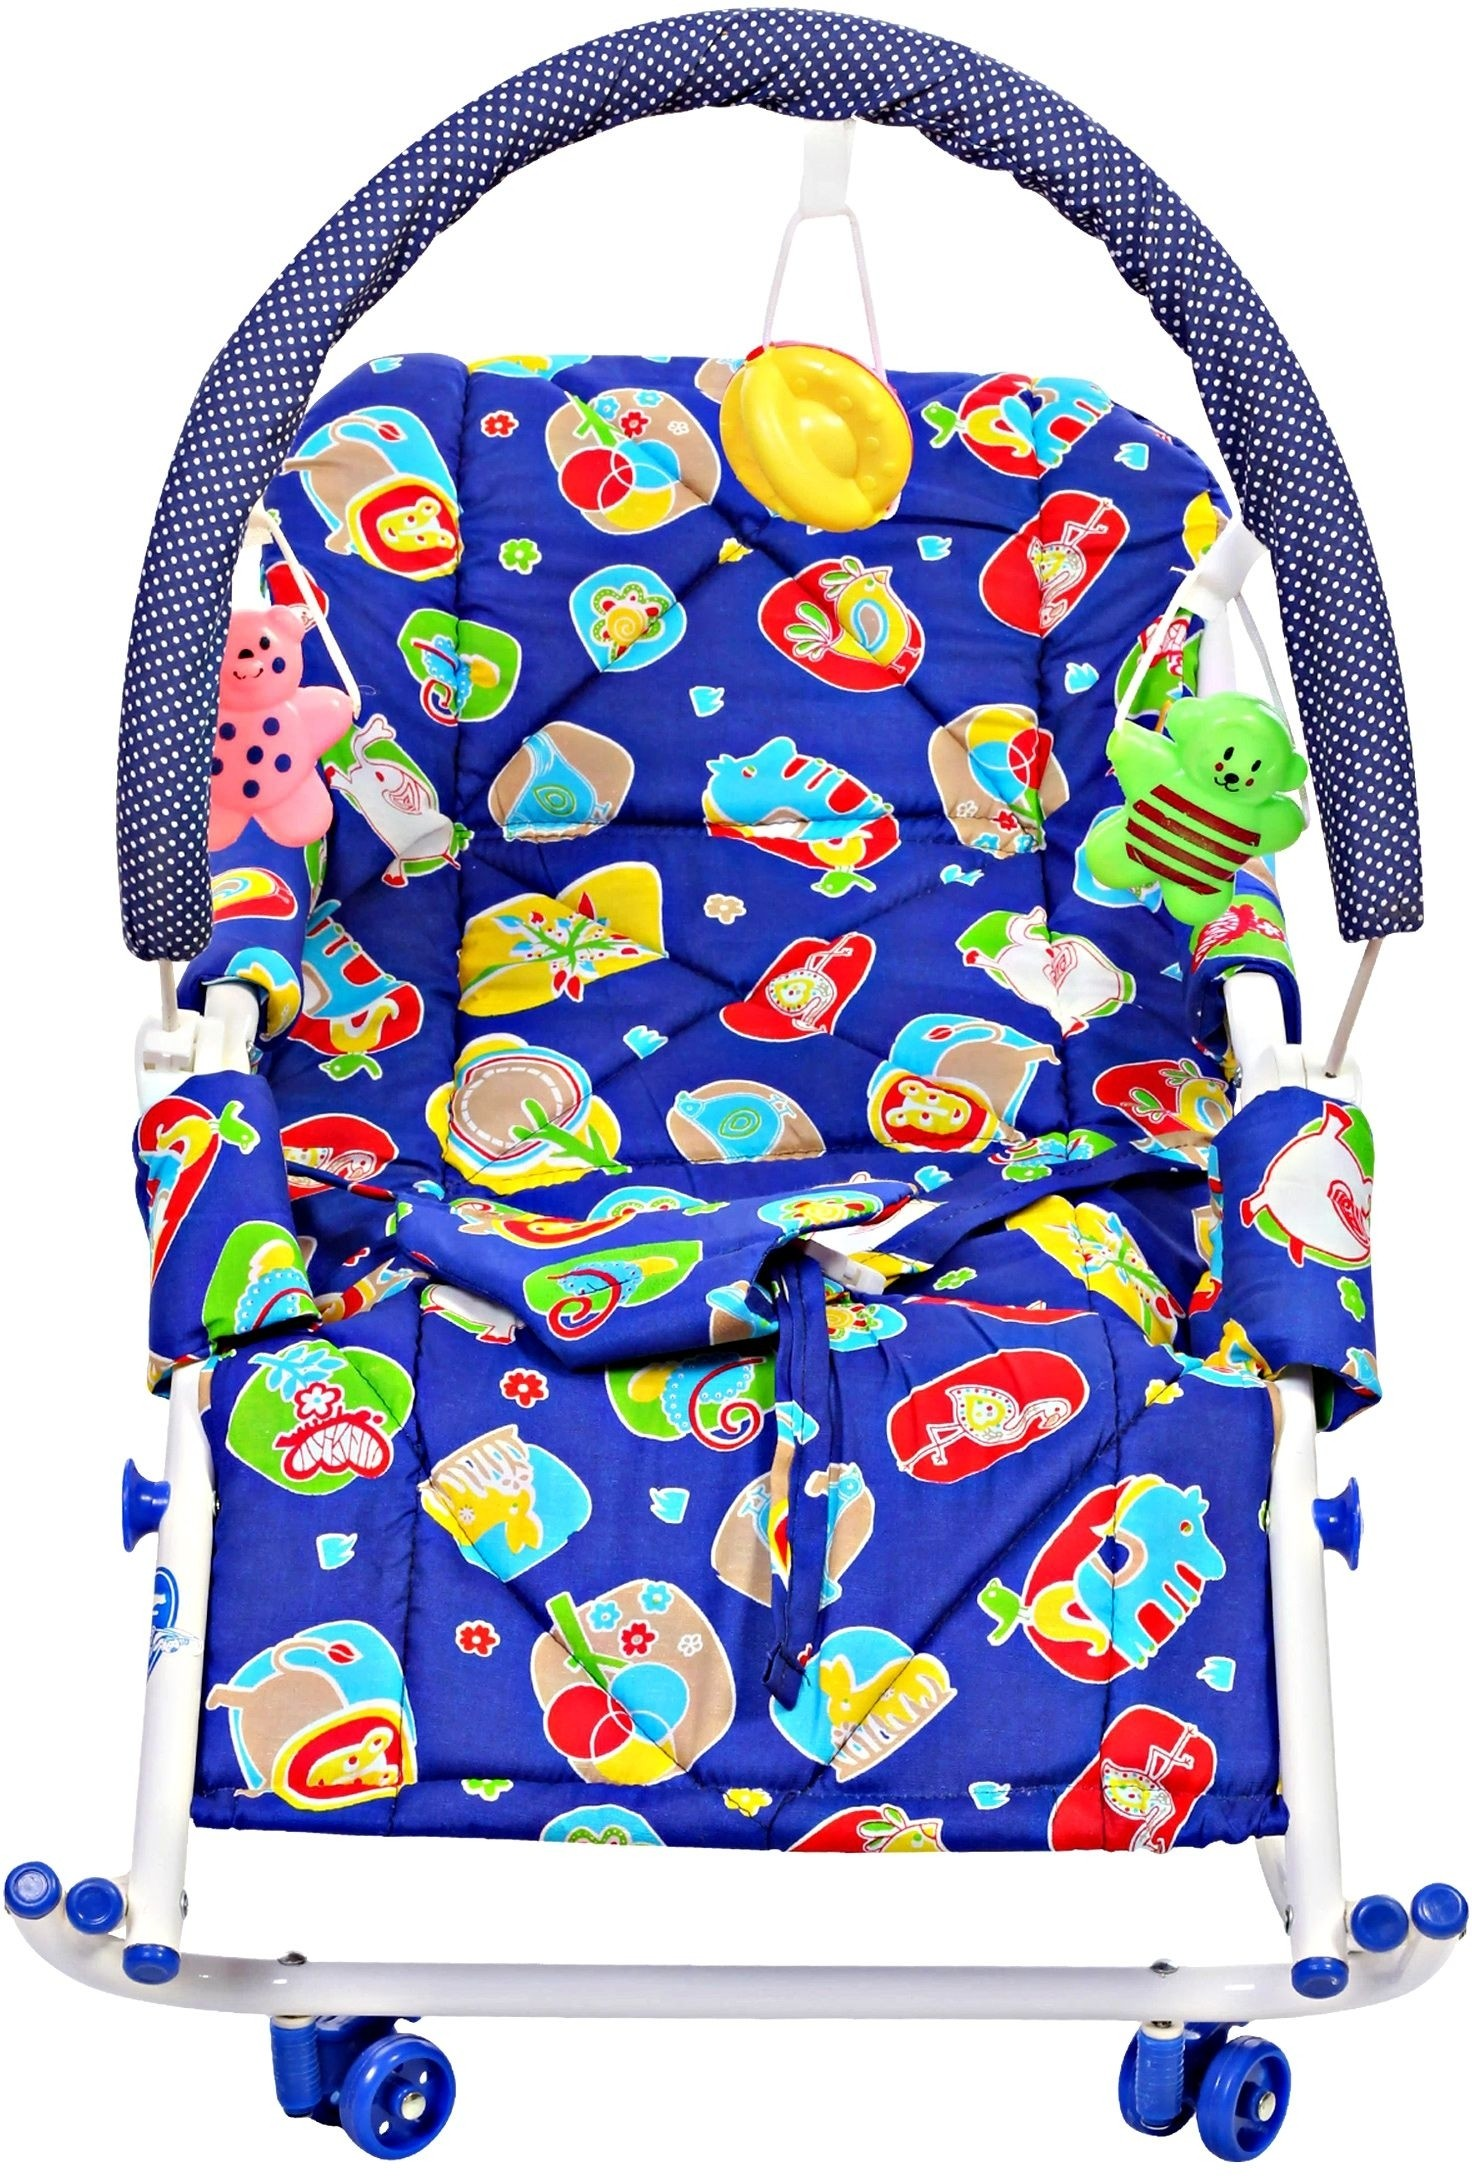 Rockers Swings Price In India Buy Online At Best Bright Starts Comfort Ampamp Harmony Portable Swing Blossomy Blooms New Natraj Rocko Blue